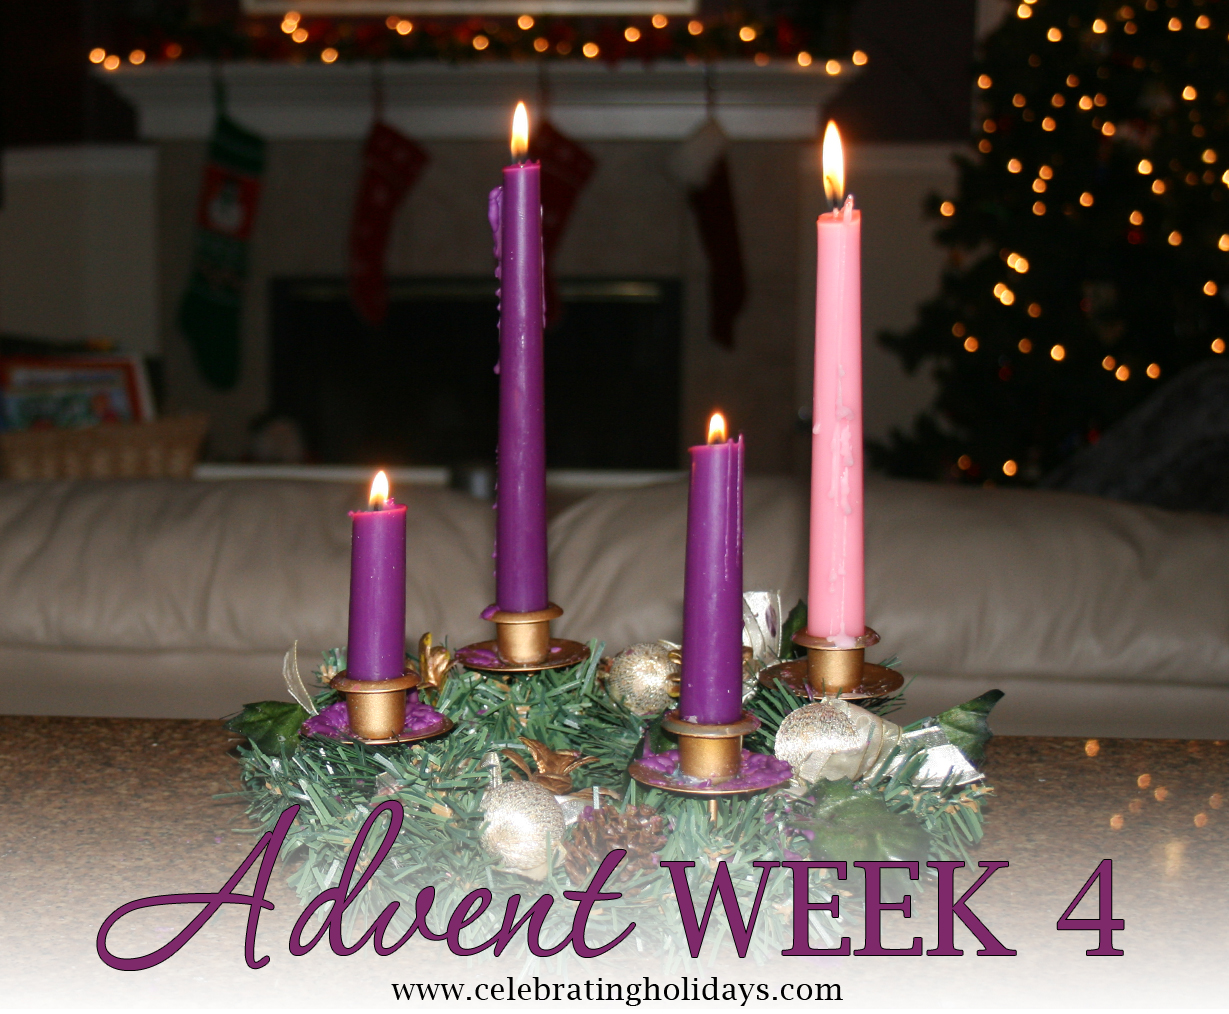 Advent Week 4 Reading, Music, and Candle Lighting